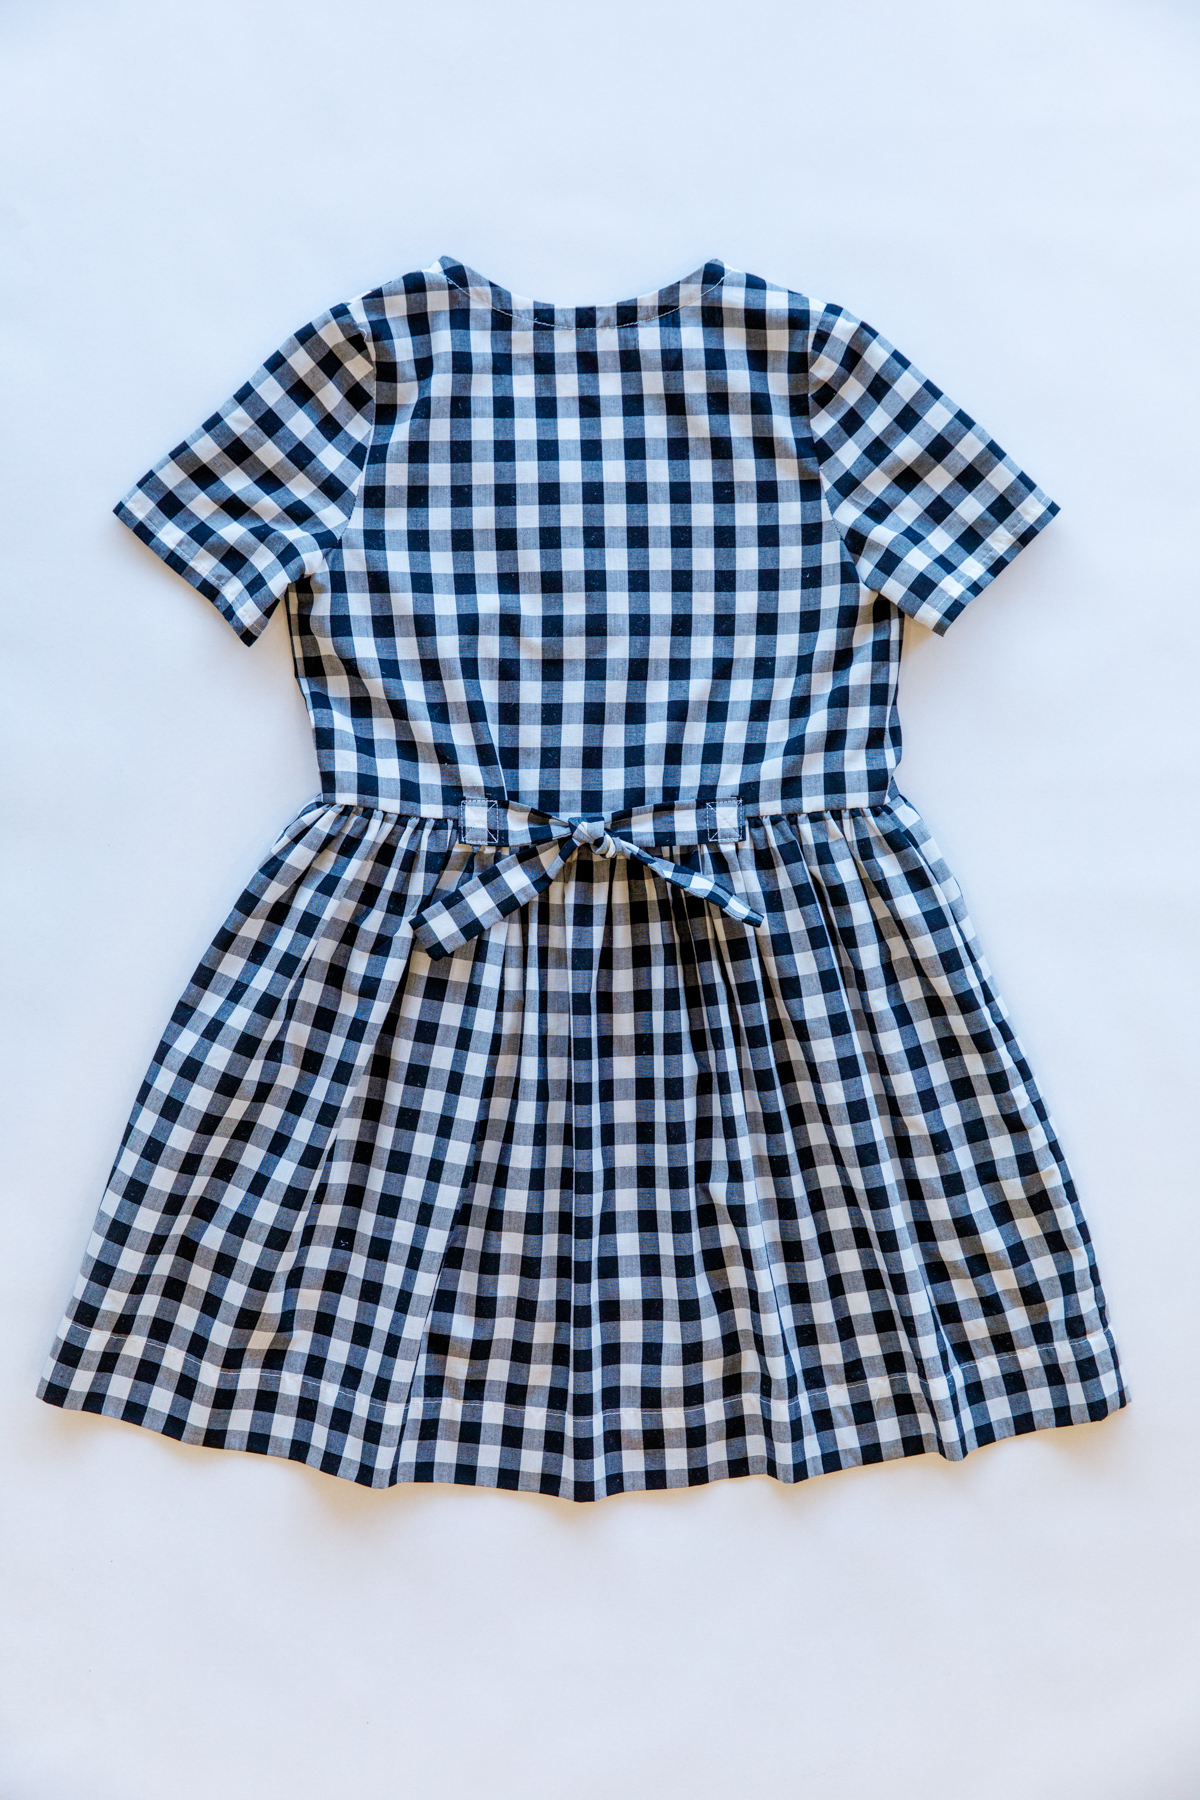 Mini Darling Ranges short sleeve dress from the back